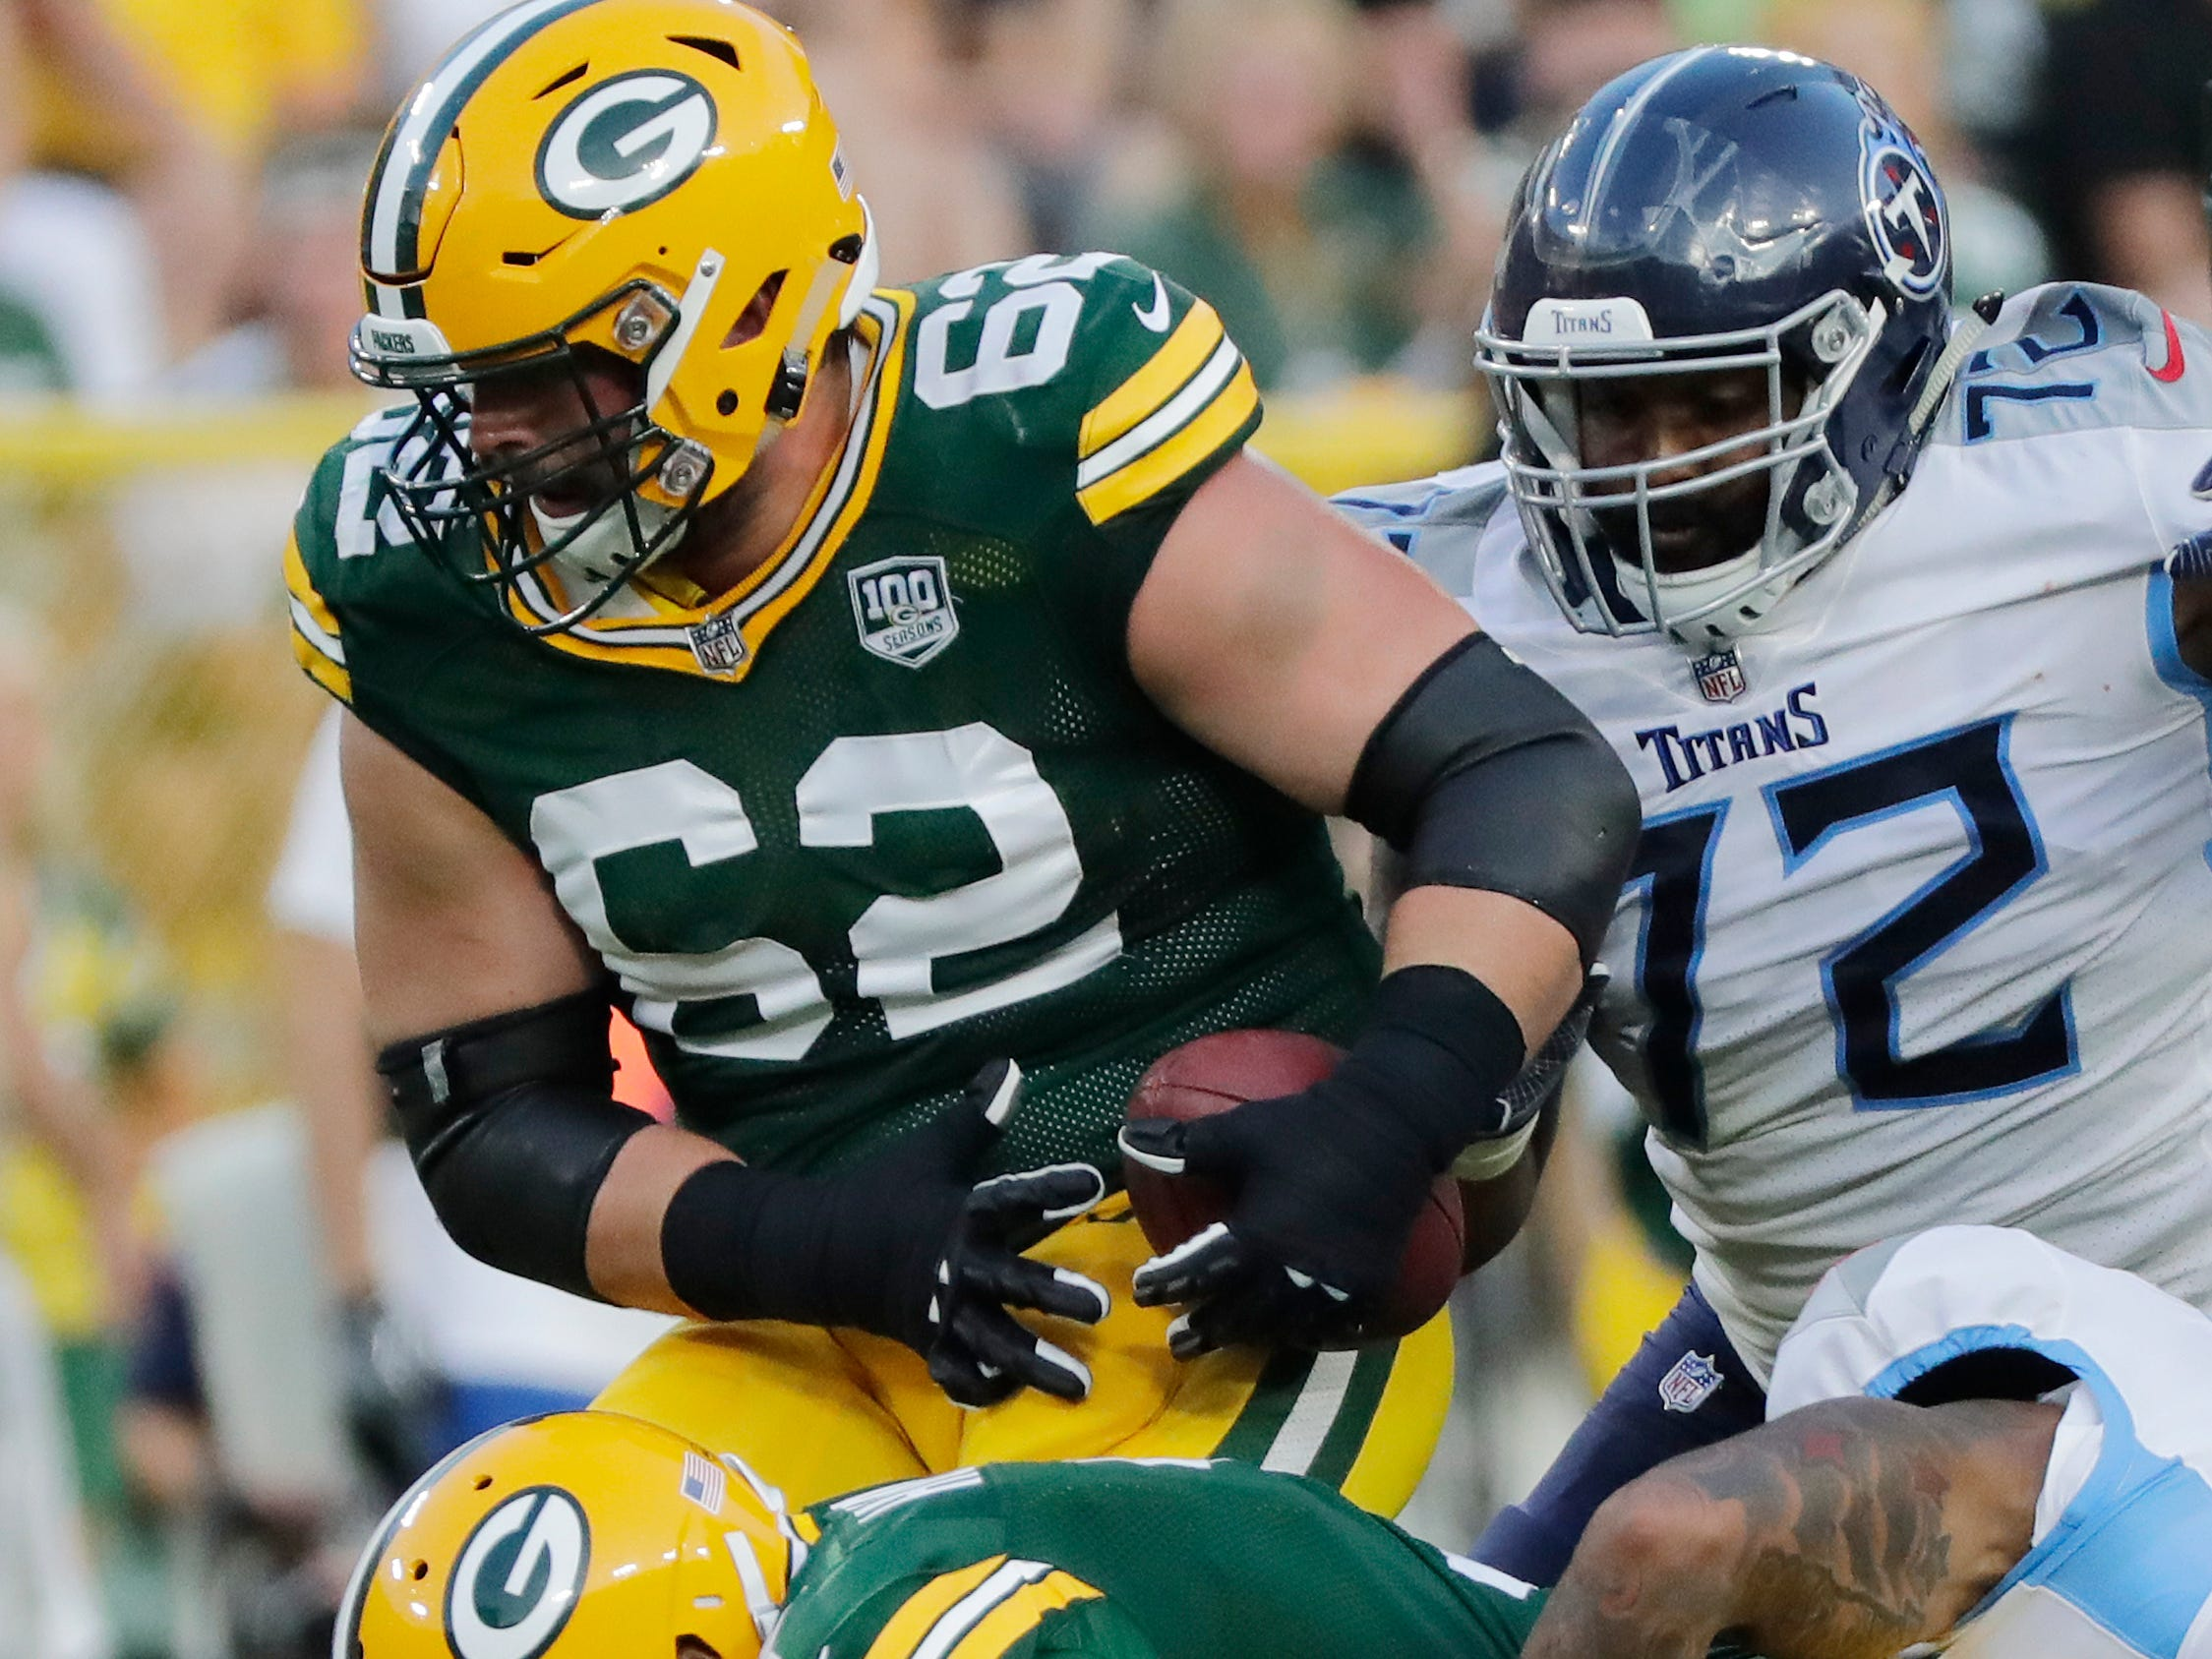 Green Bay Packers offensive guard Lucas Patrick (62) recovers the ball after Green Bay Packers quarterback Brett Hundley (7) fumbled against the Tennessee Titans in the first half of an NFL preseason game at Lambeau Field on Thursday, August 9, 2018 in Green Bay, Wis.